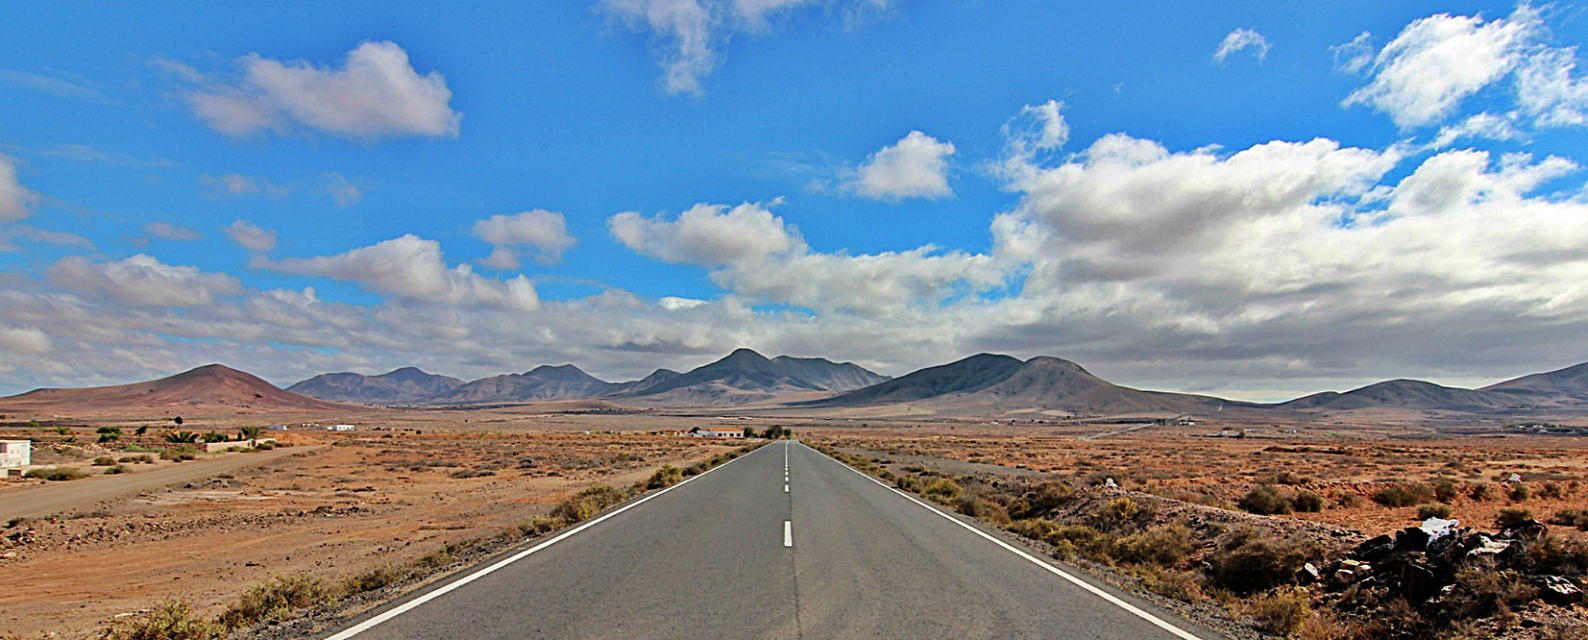 Fuerteventura on the road